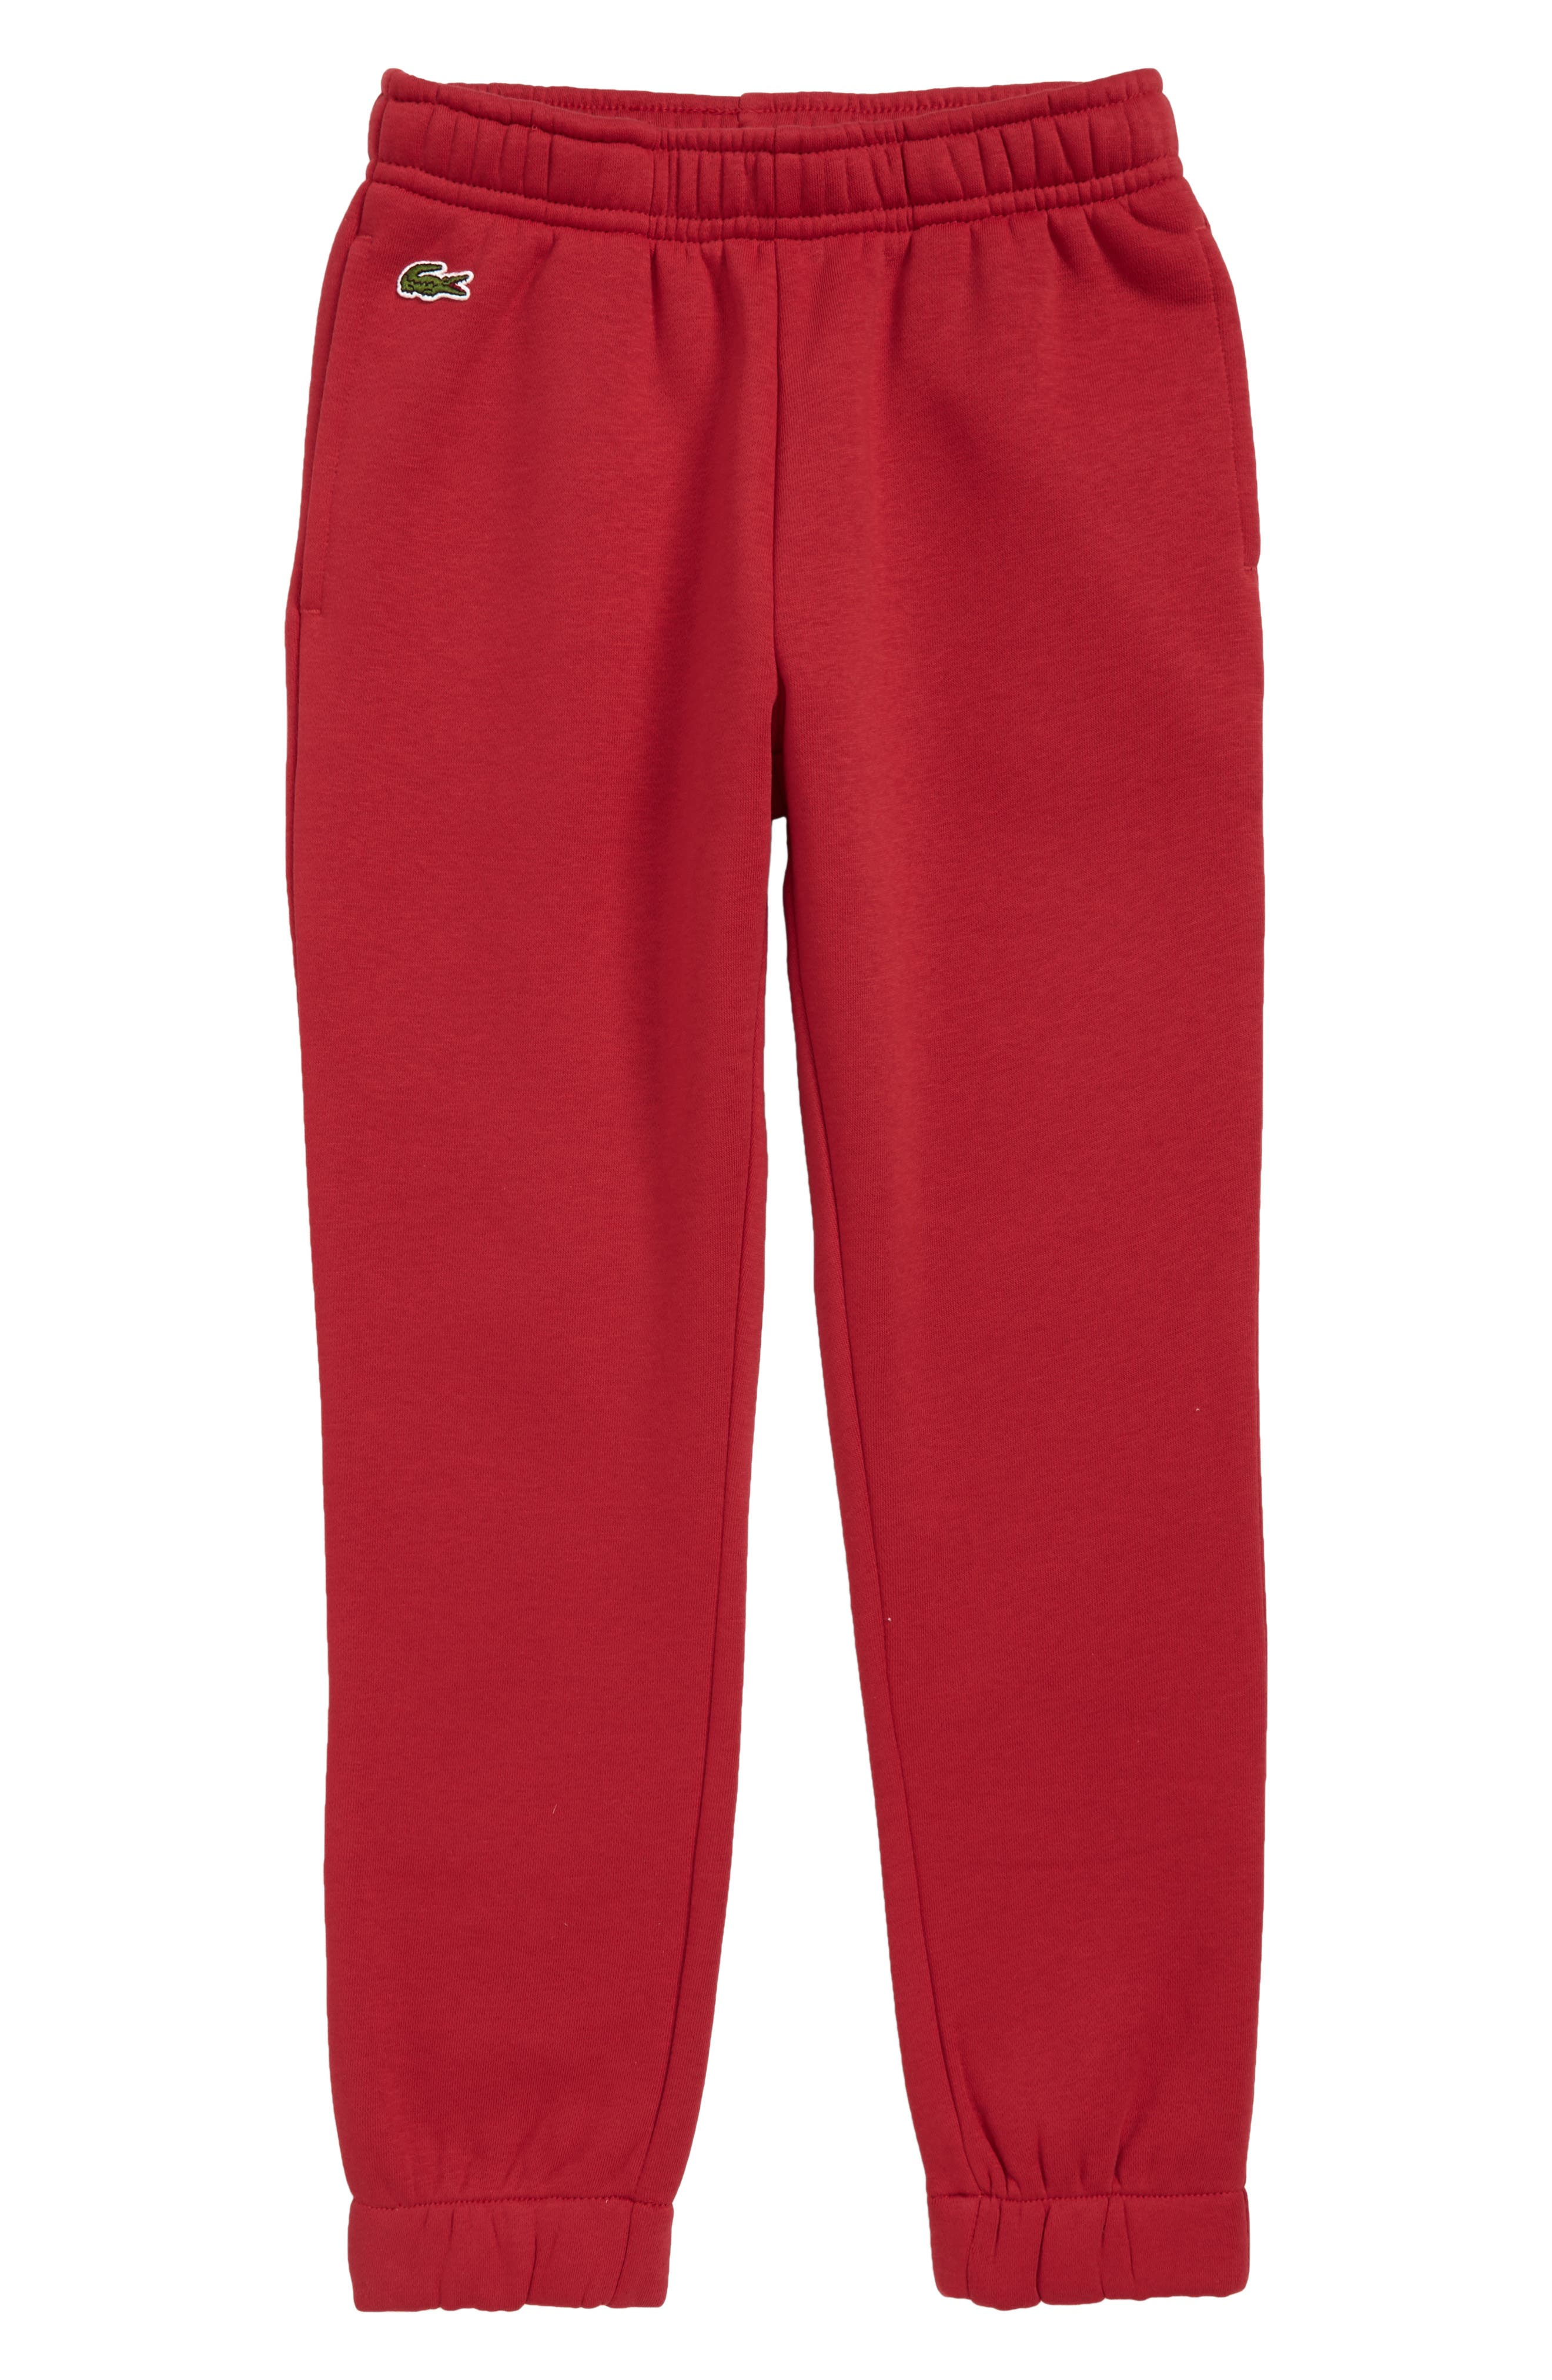 LACOSTE Fleece Pants, Main, color, LIGHTHOUSE RED